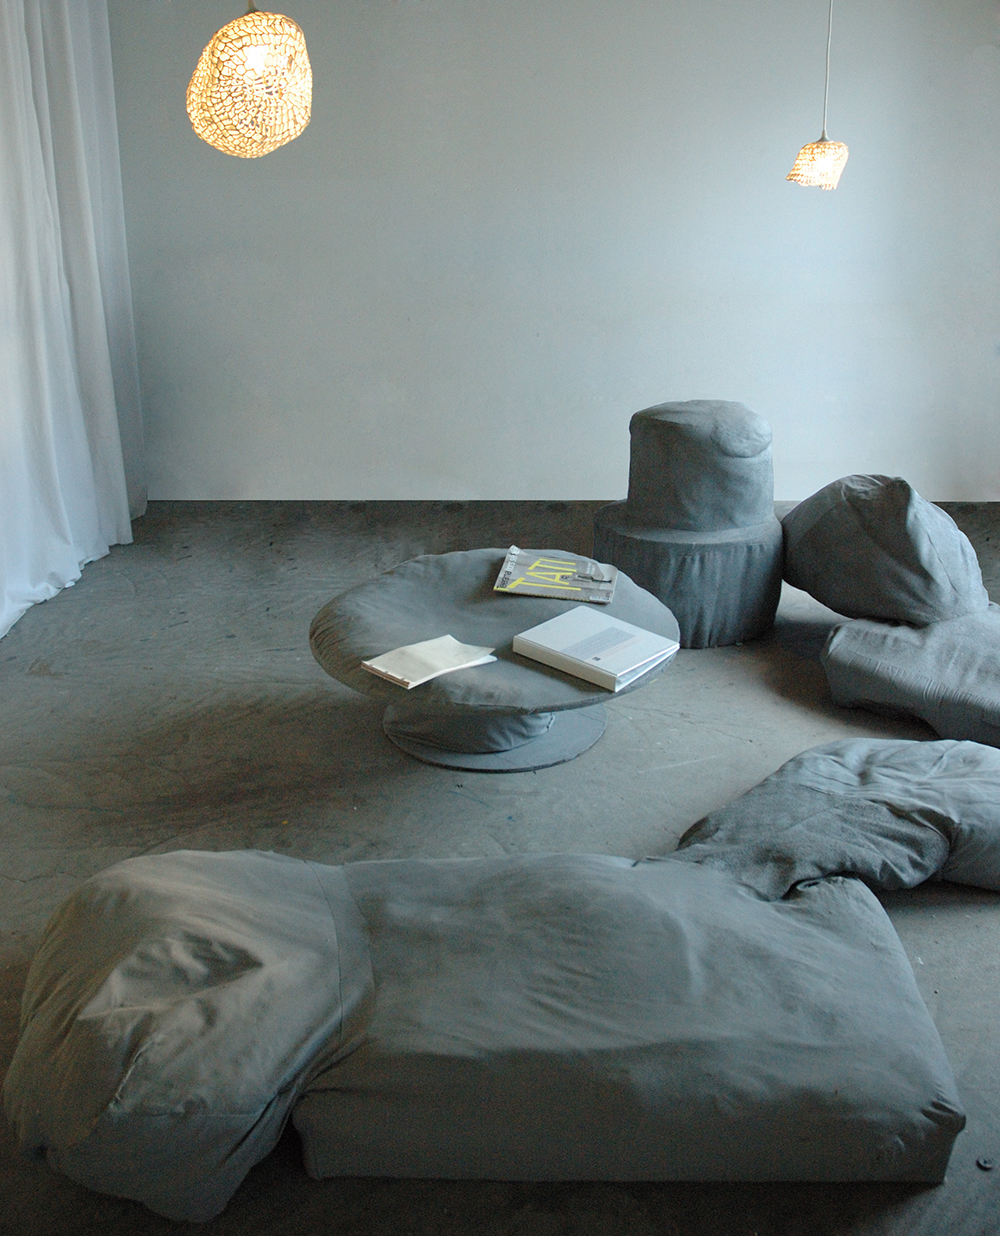 Soft furniture made with whatever Elodie found in the space + grey paint